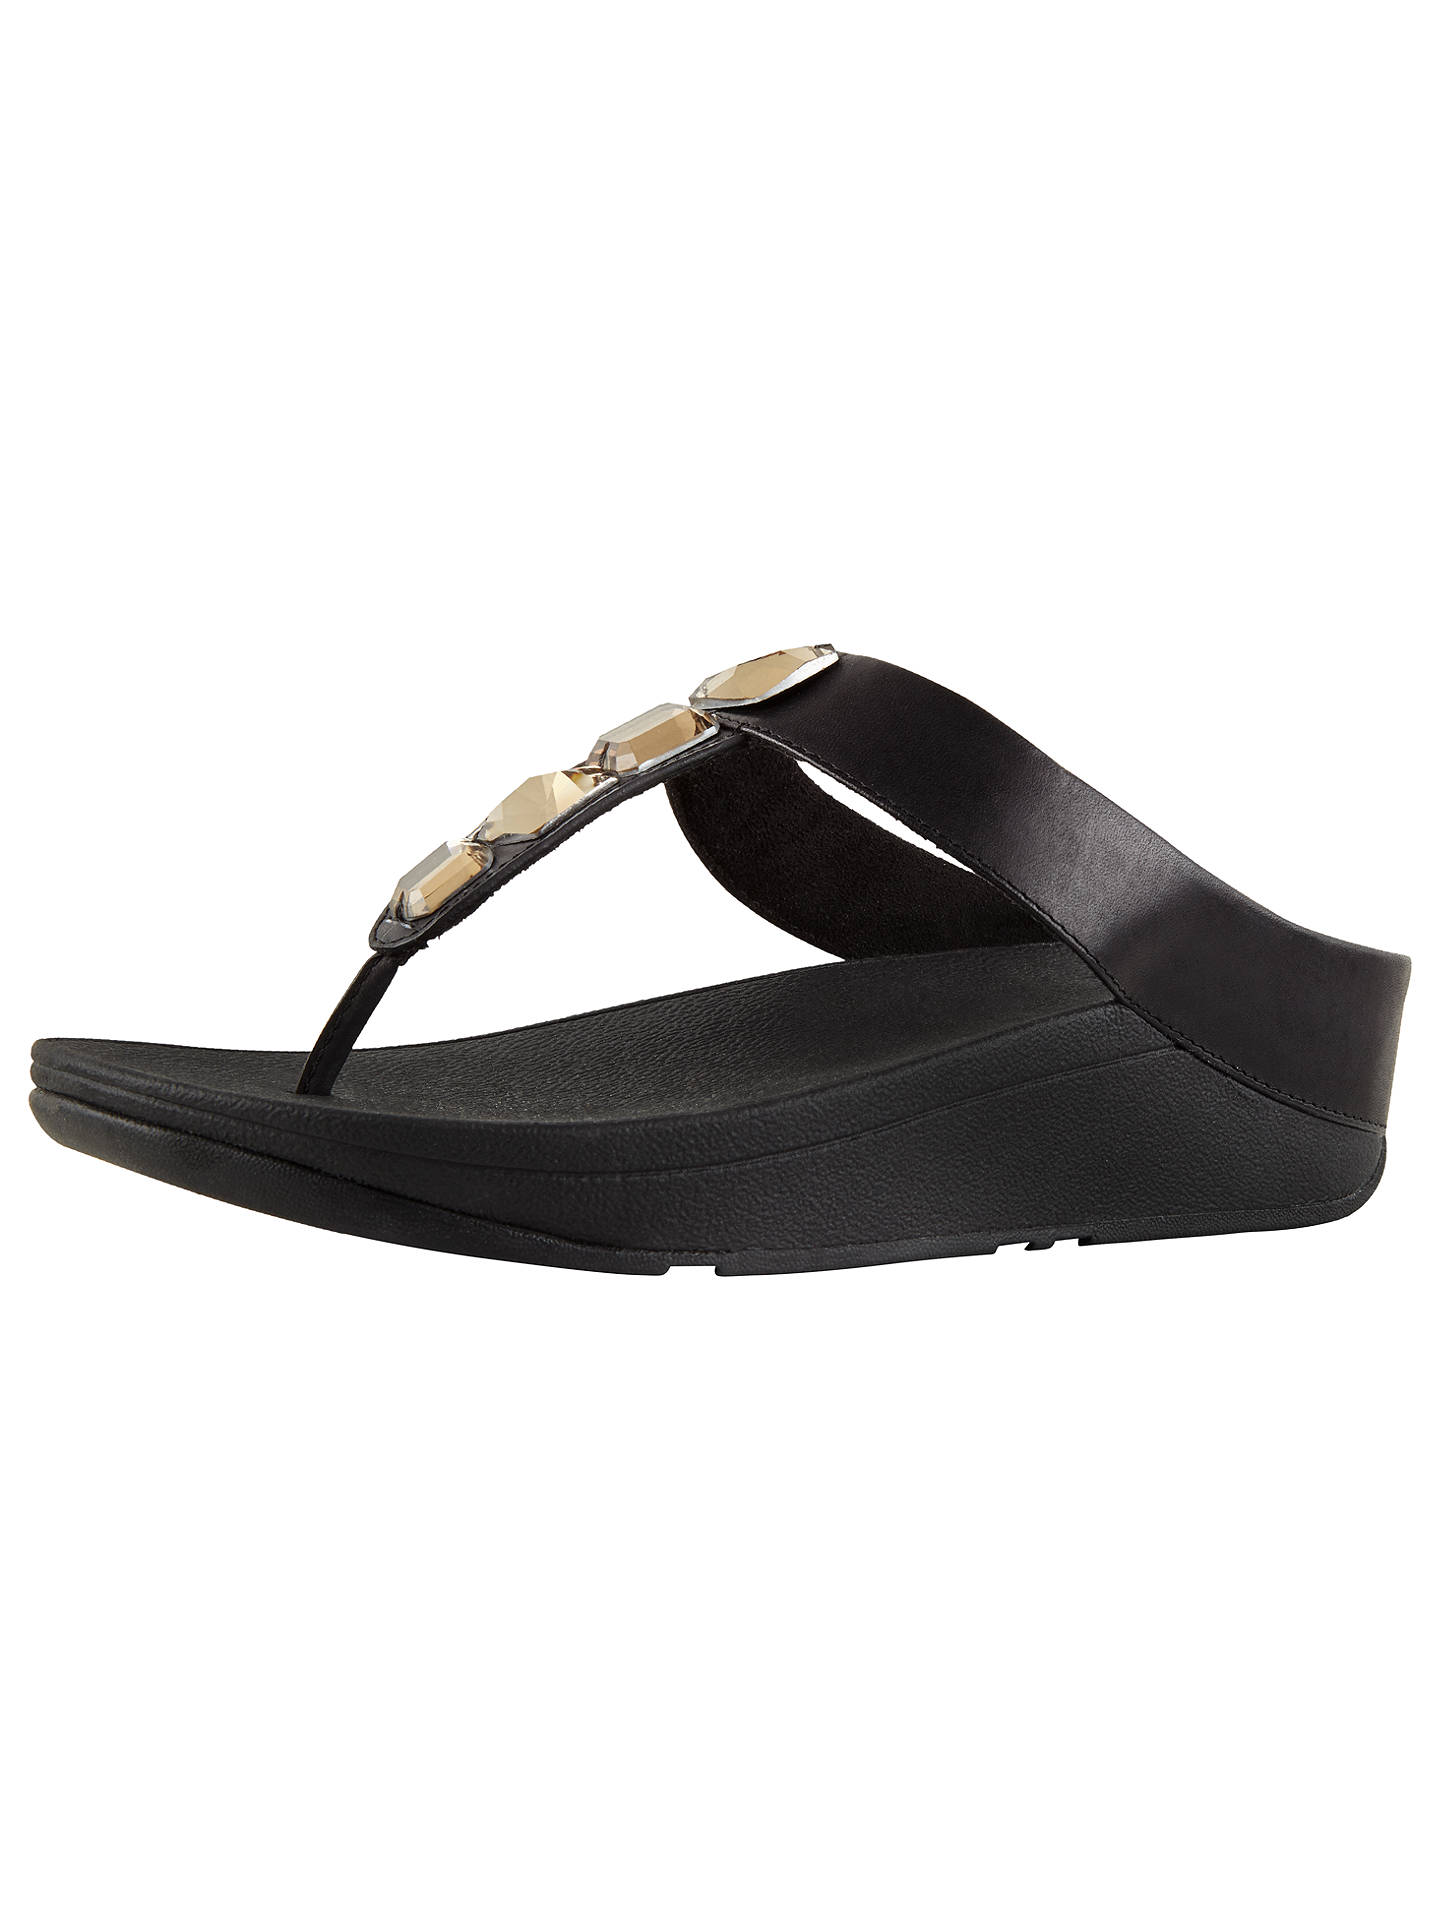 736db284b5a7 FitFlop Roka Embellished Toe Post Sandals at John Lewis   Partners